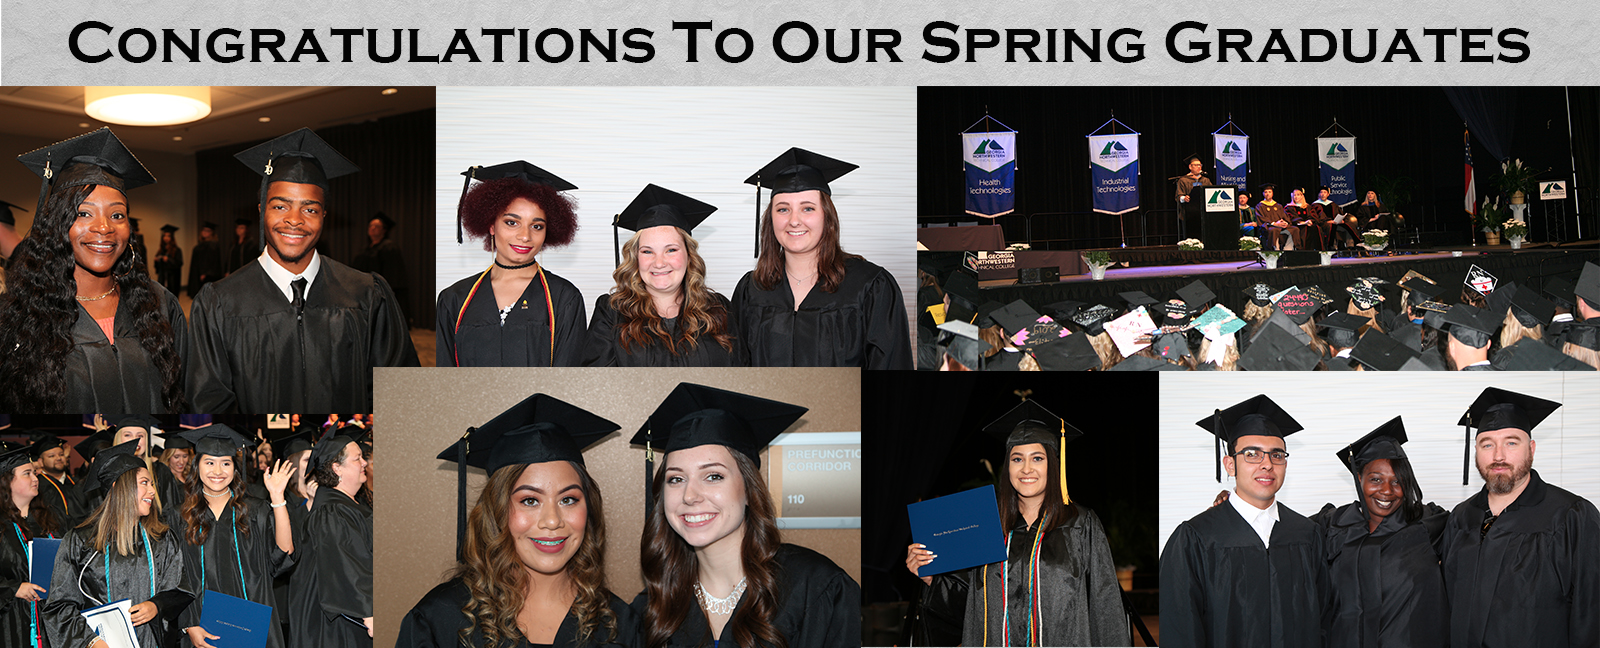 Congratulations to our Spring Graduates